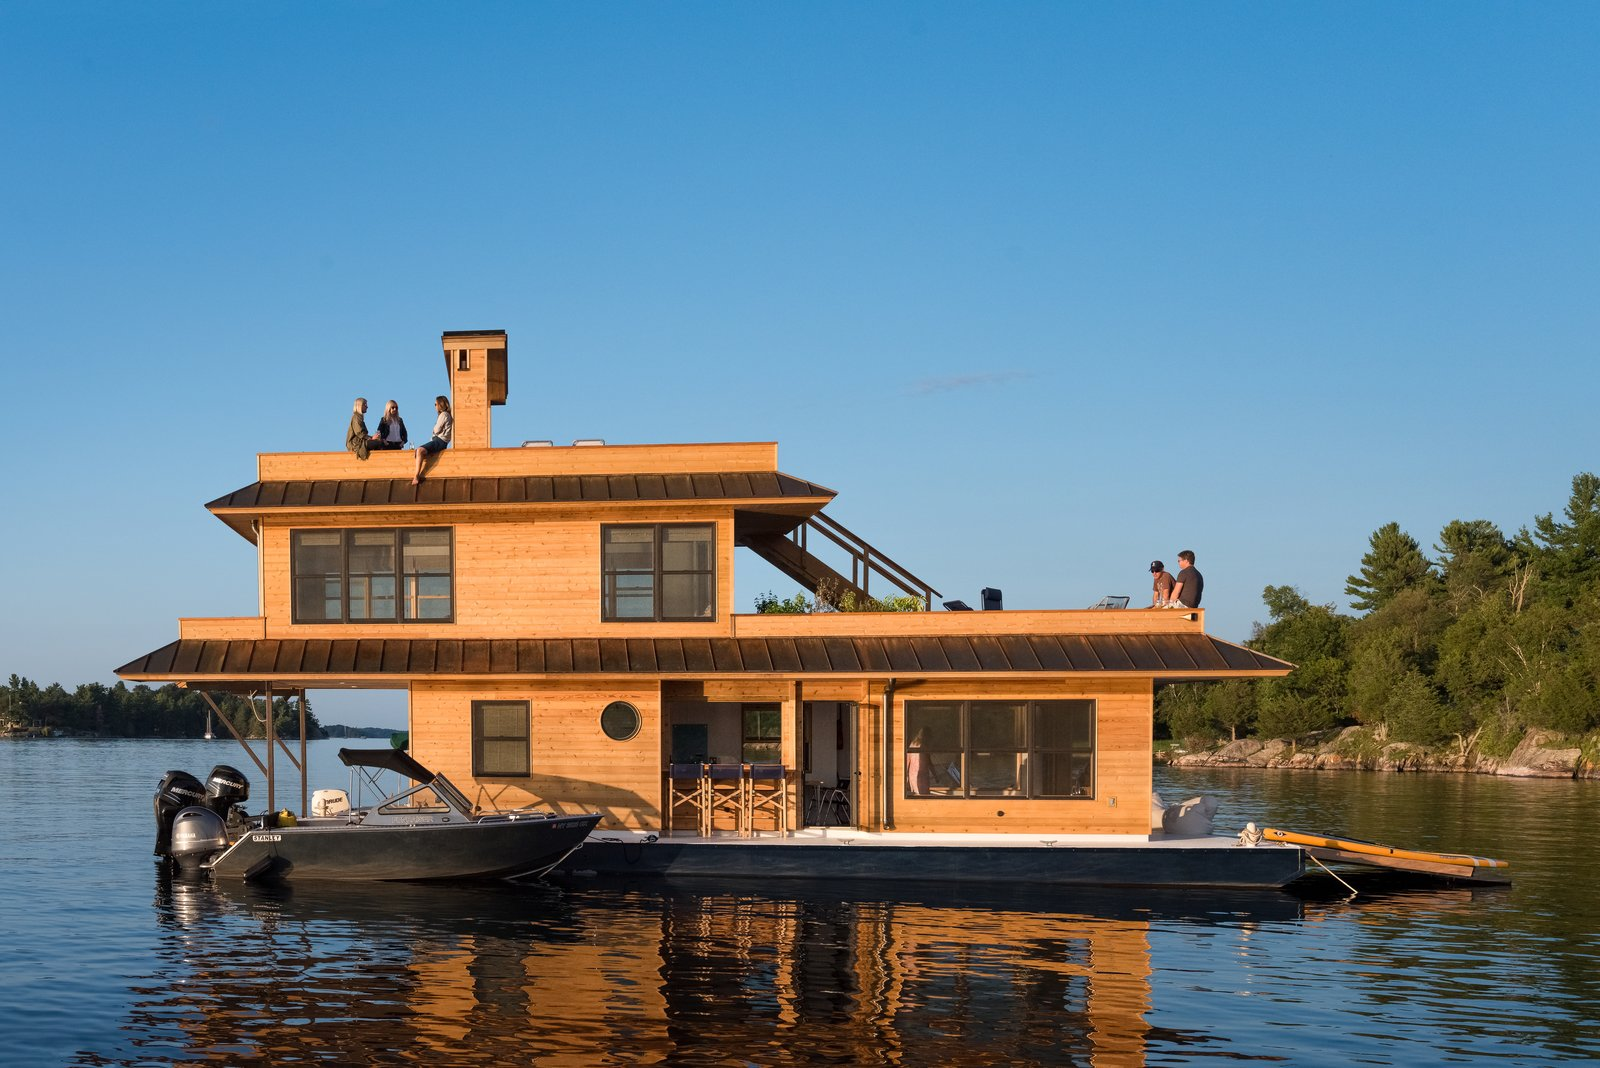 Exterior, House Building Type, Metal Roof Material, and Wood Siding Material When avid outdoorsman Richard Daigneault set out to create the ultimate, compact houseboat, his masterful woodworking skills and eco-friendly ethos produced a floating home so coveted that he launched a company to meet demand for his amphibious dwelling—with a starting price of $79,000 CAD (approximately $61,000 USD).  The Barge Yacht